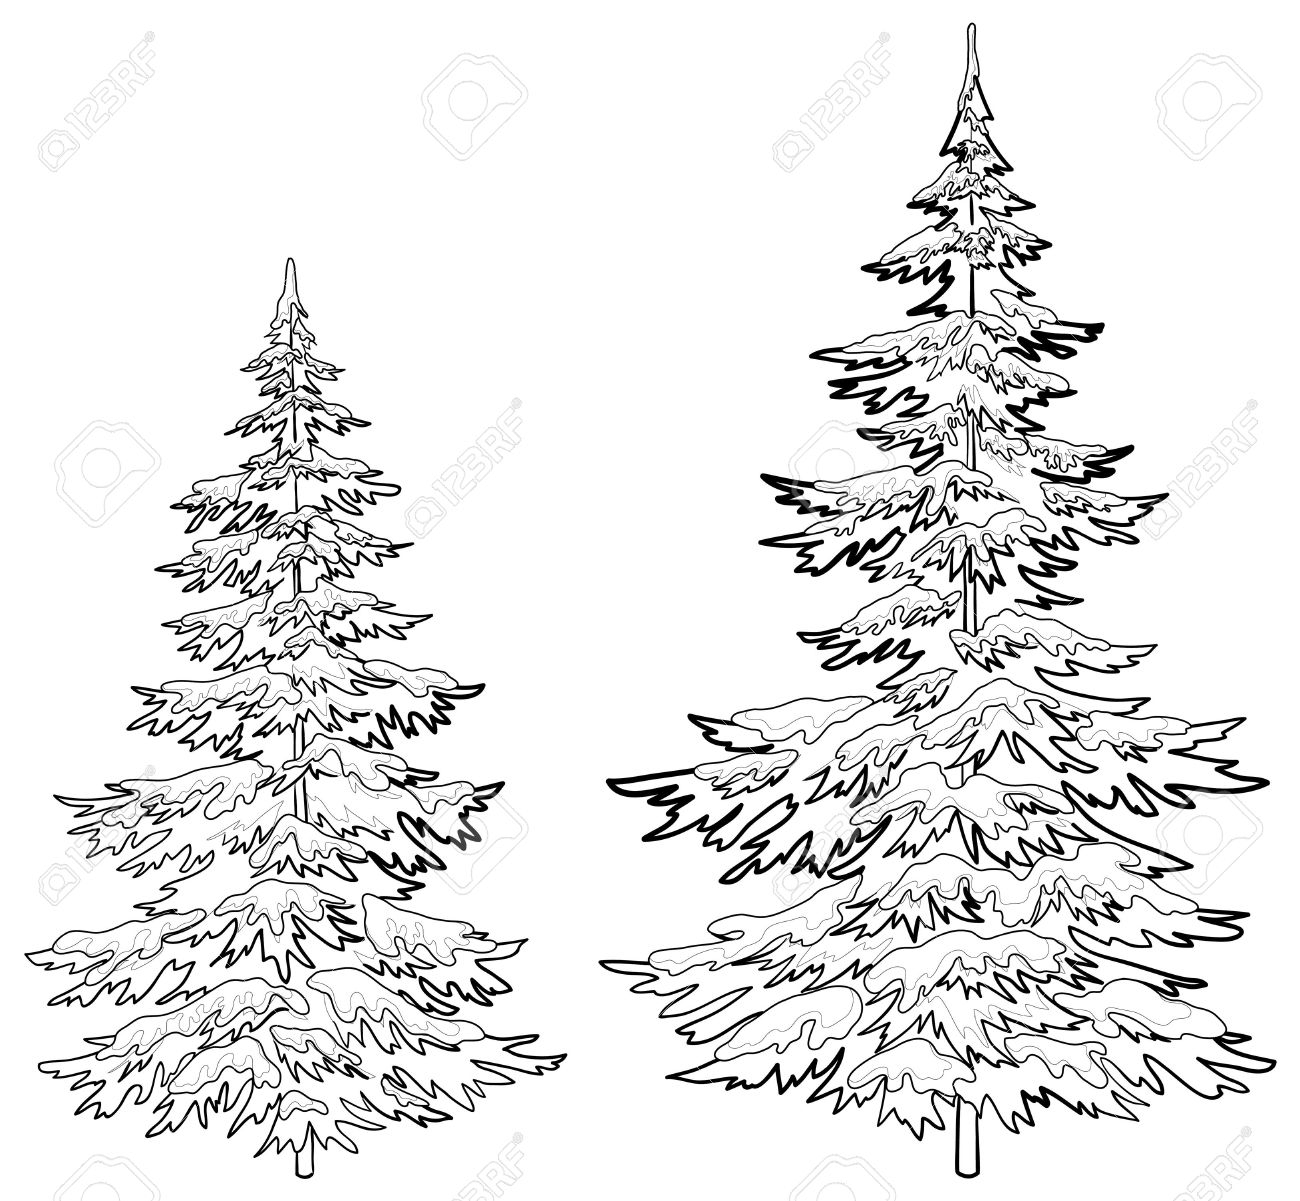 1300x1201 Pine Tree Line Drawing Vector, Christmas Trees Under Snow On